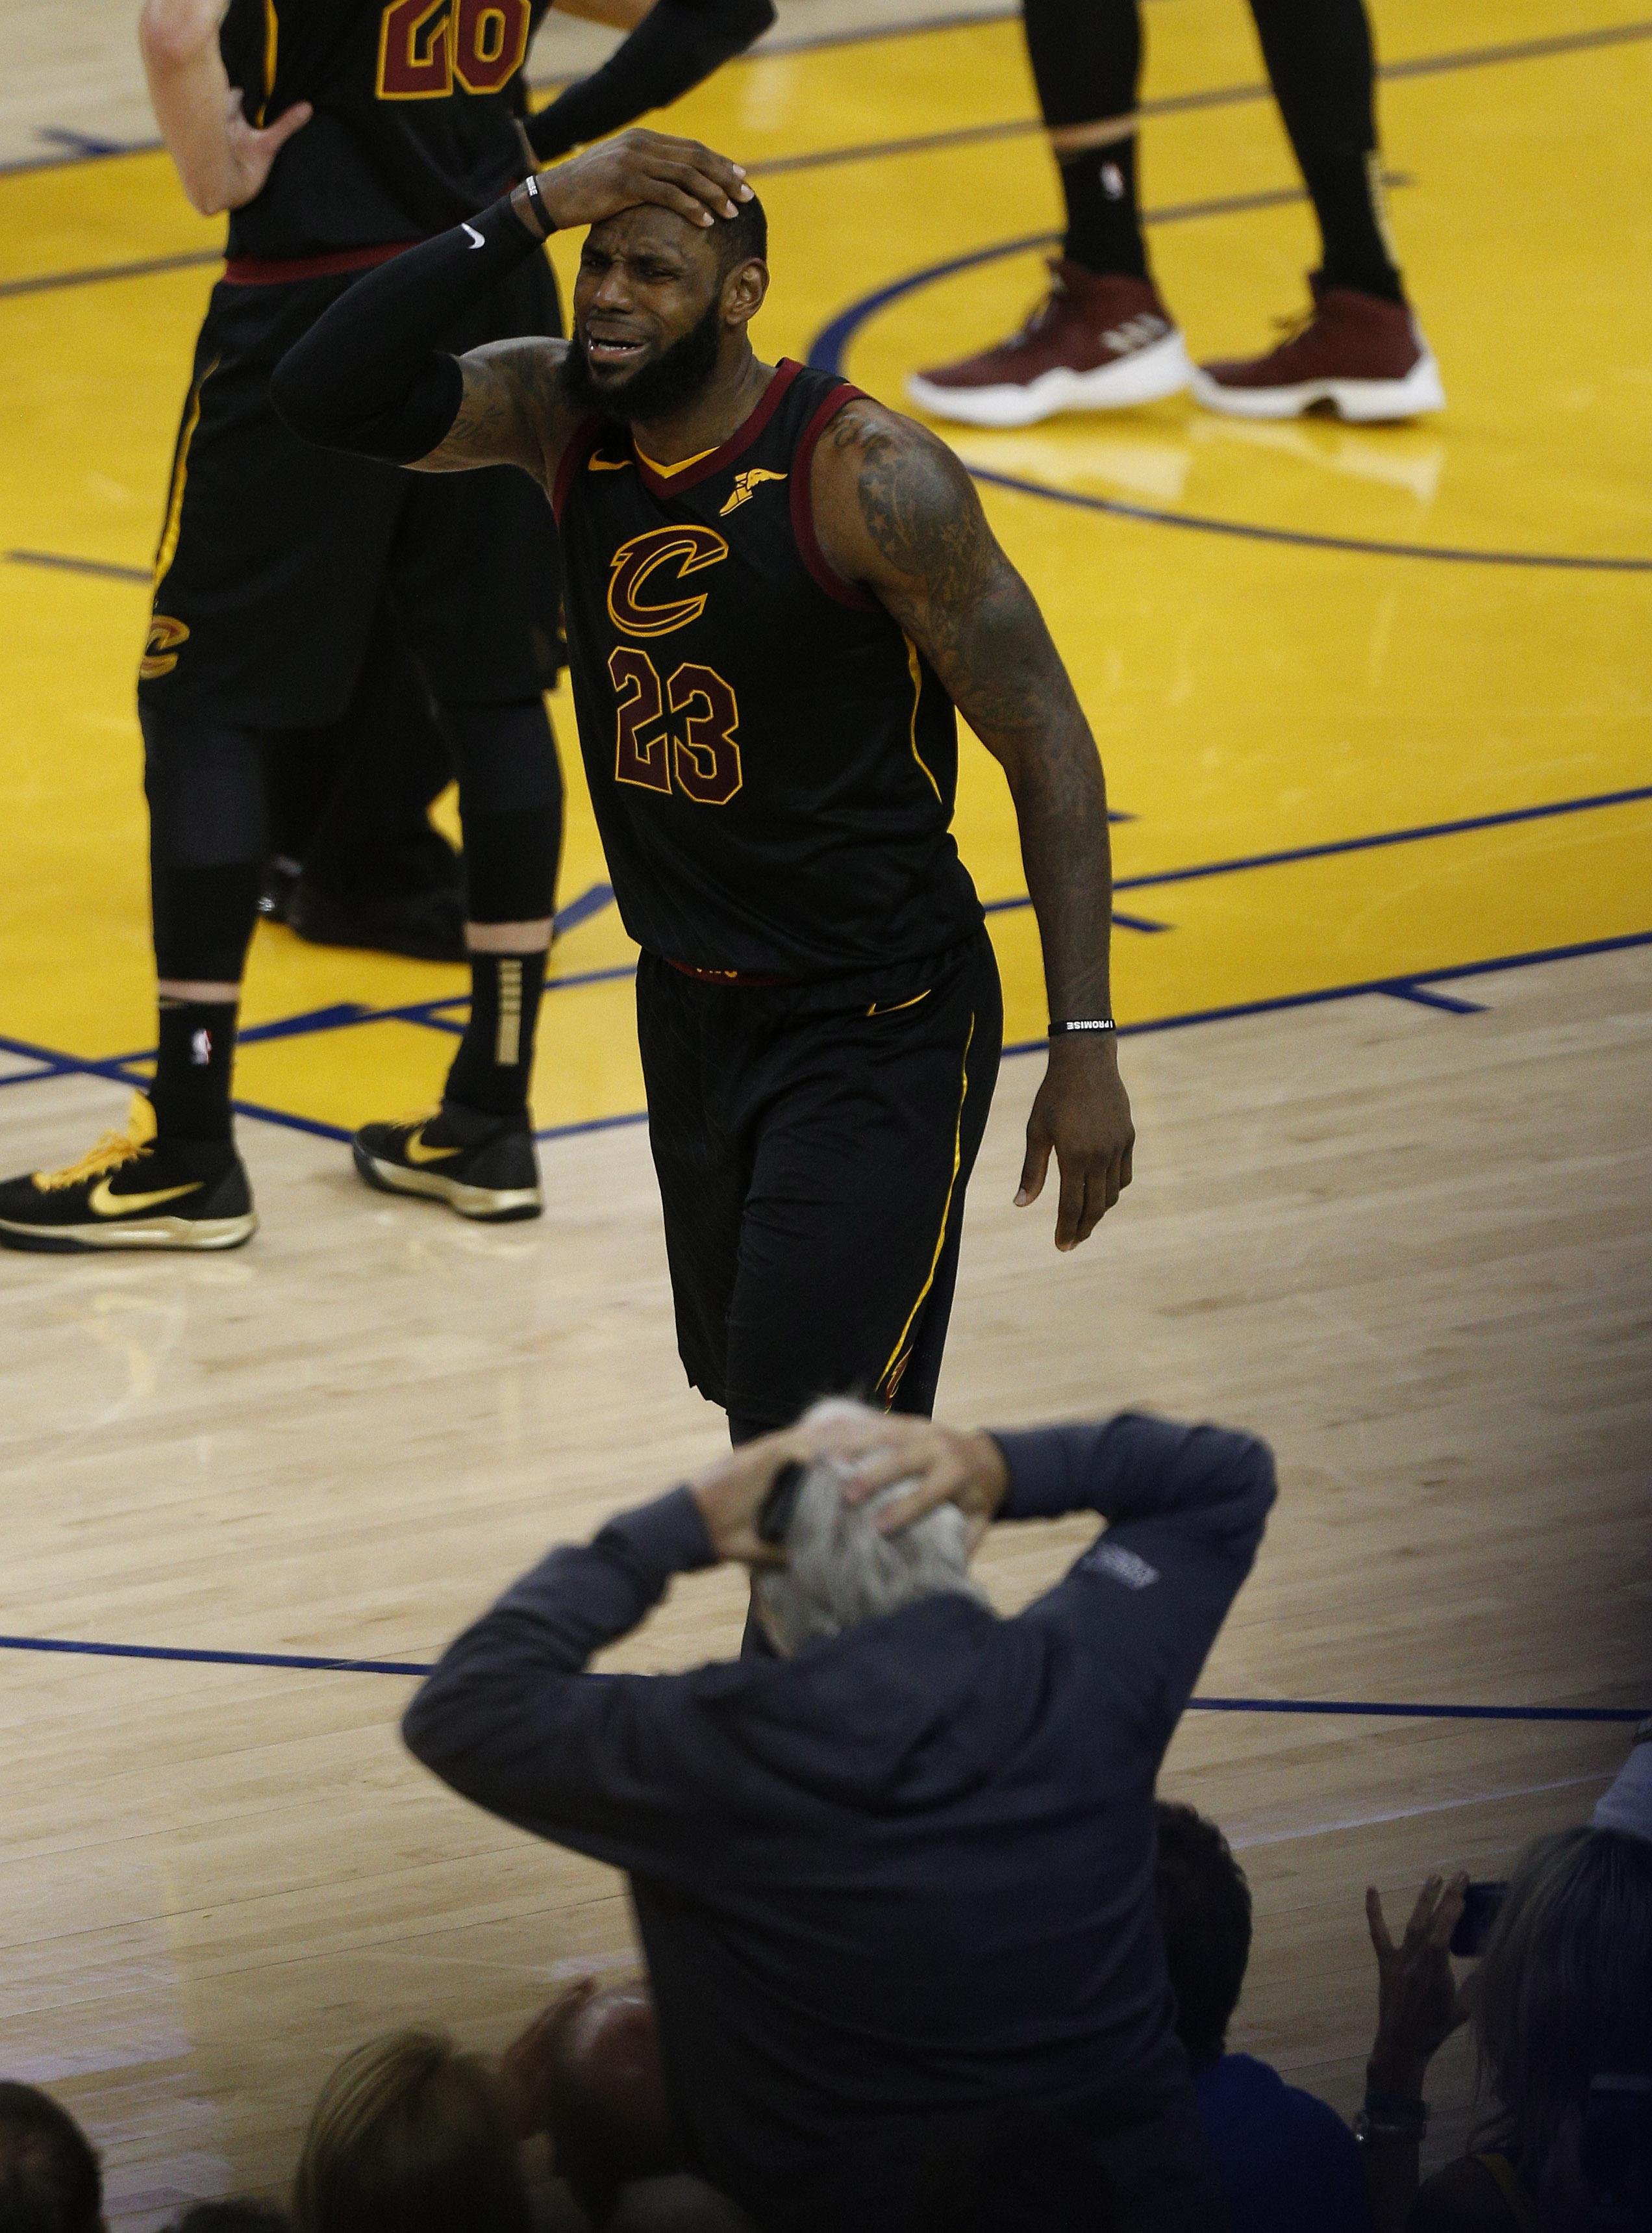 LeBron was exasperated at the Cavs missing the chance to win the game